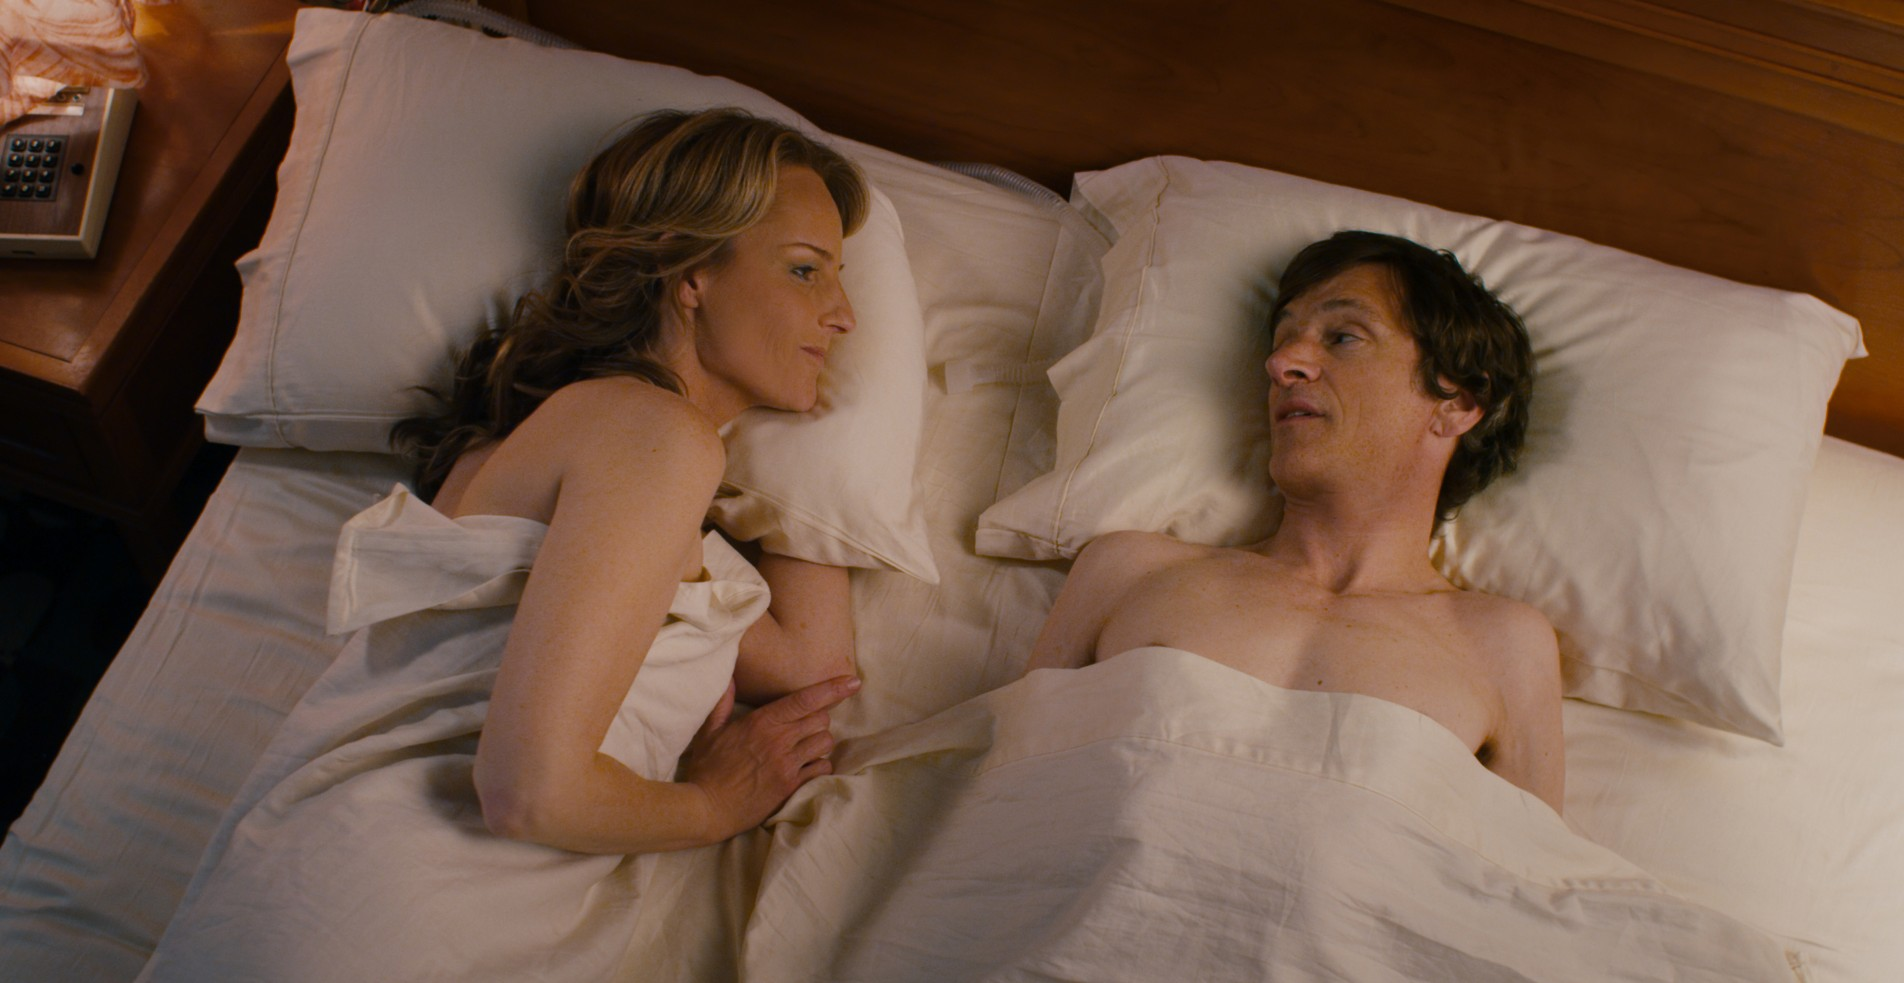 The Sessions star Helen Hunt: I wish sex could be seen through a positive lens